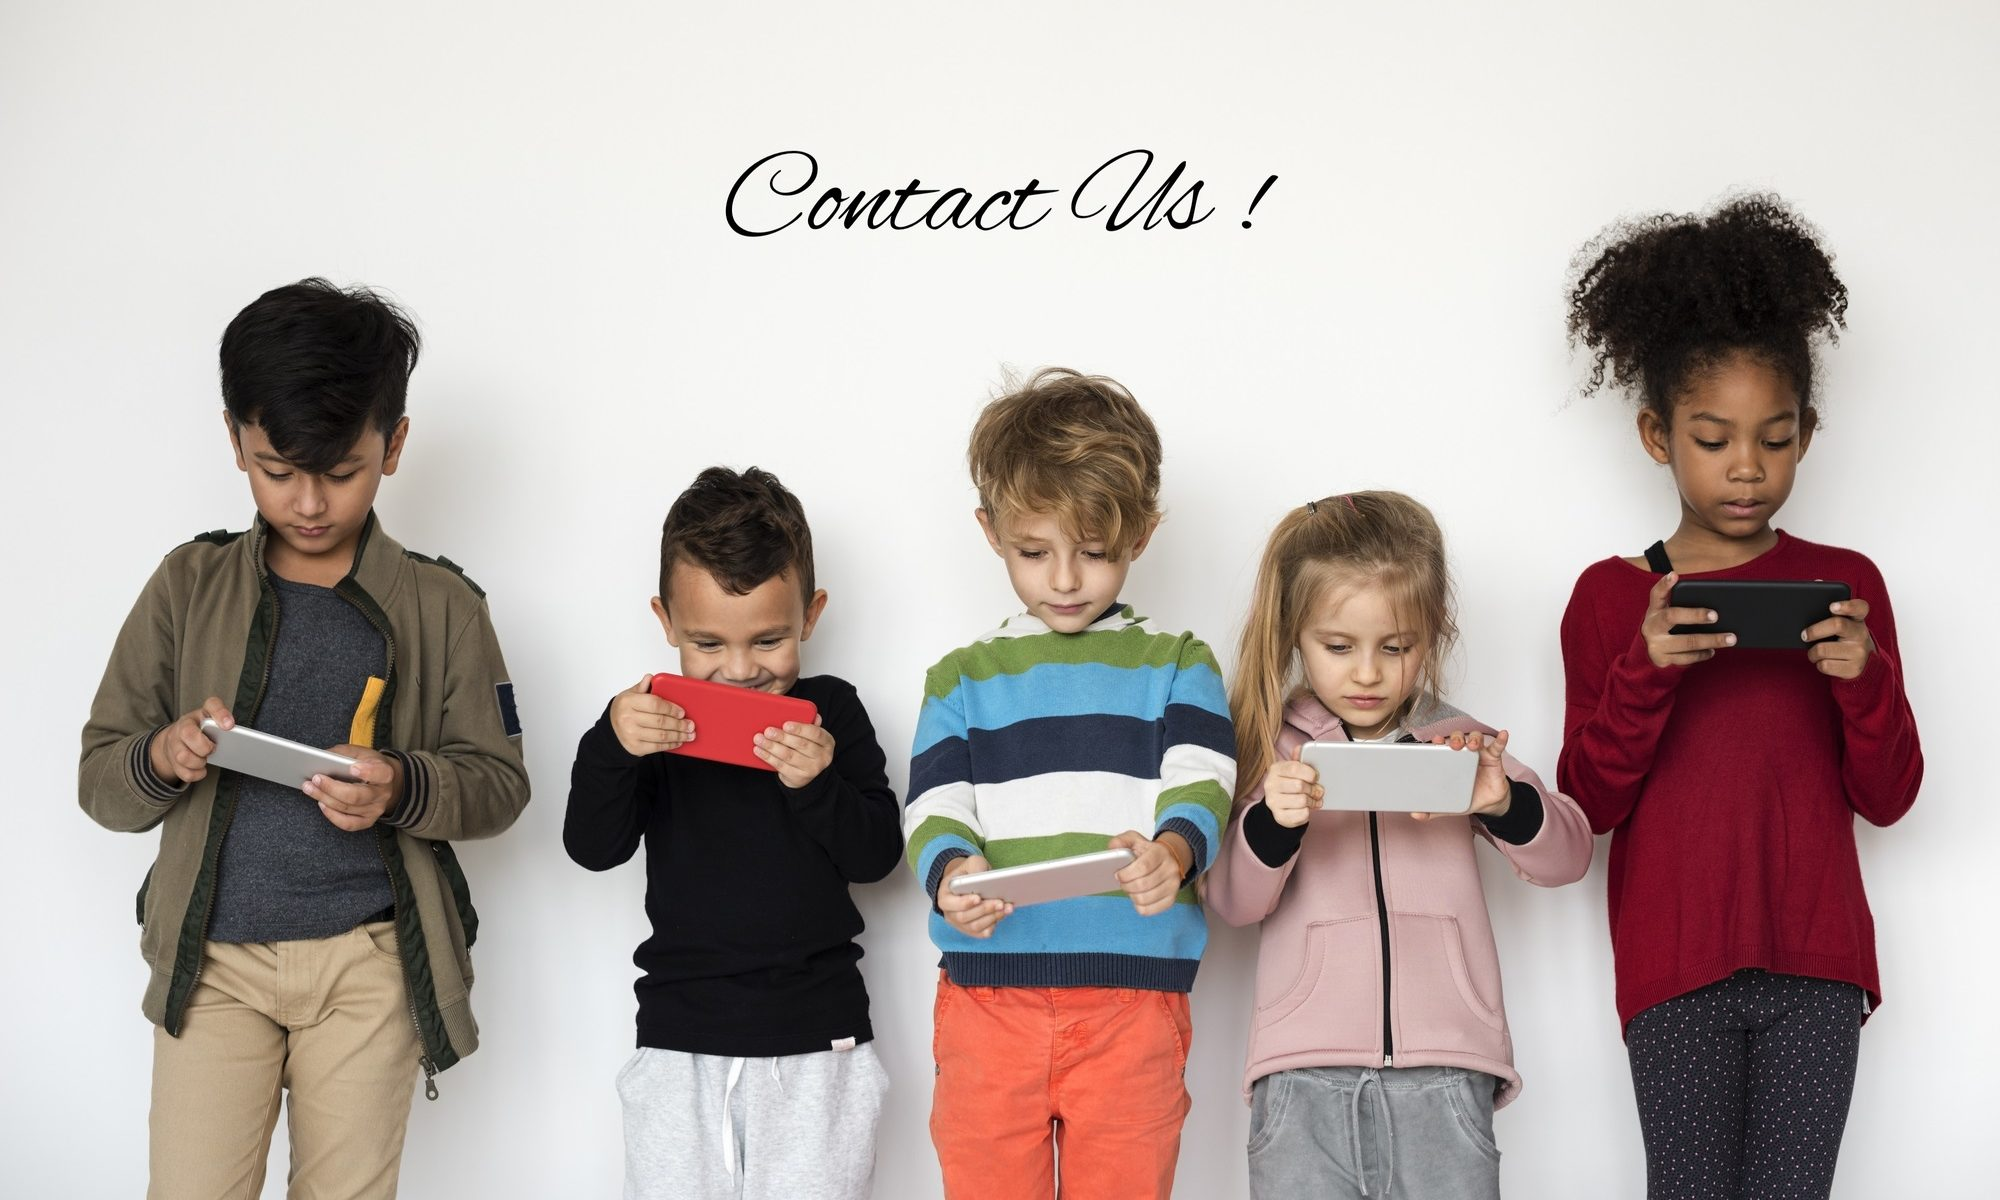 Kids Contacting Dry Green of Va. Inc